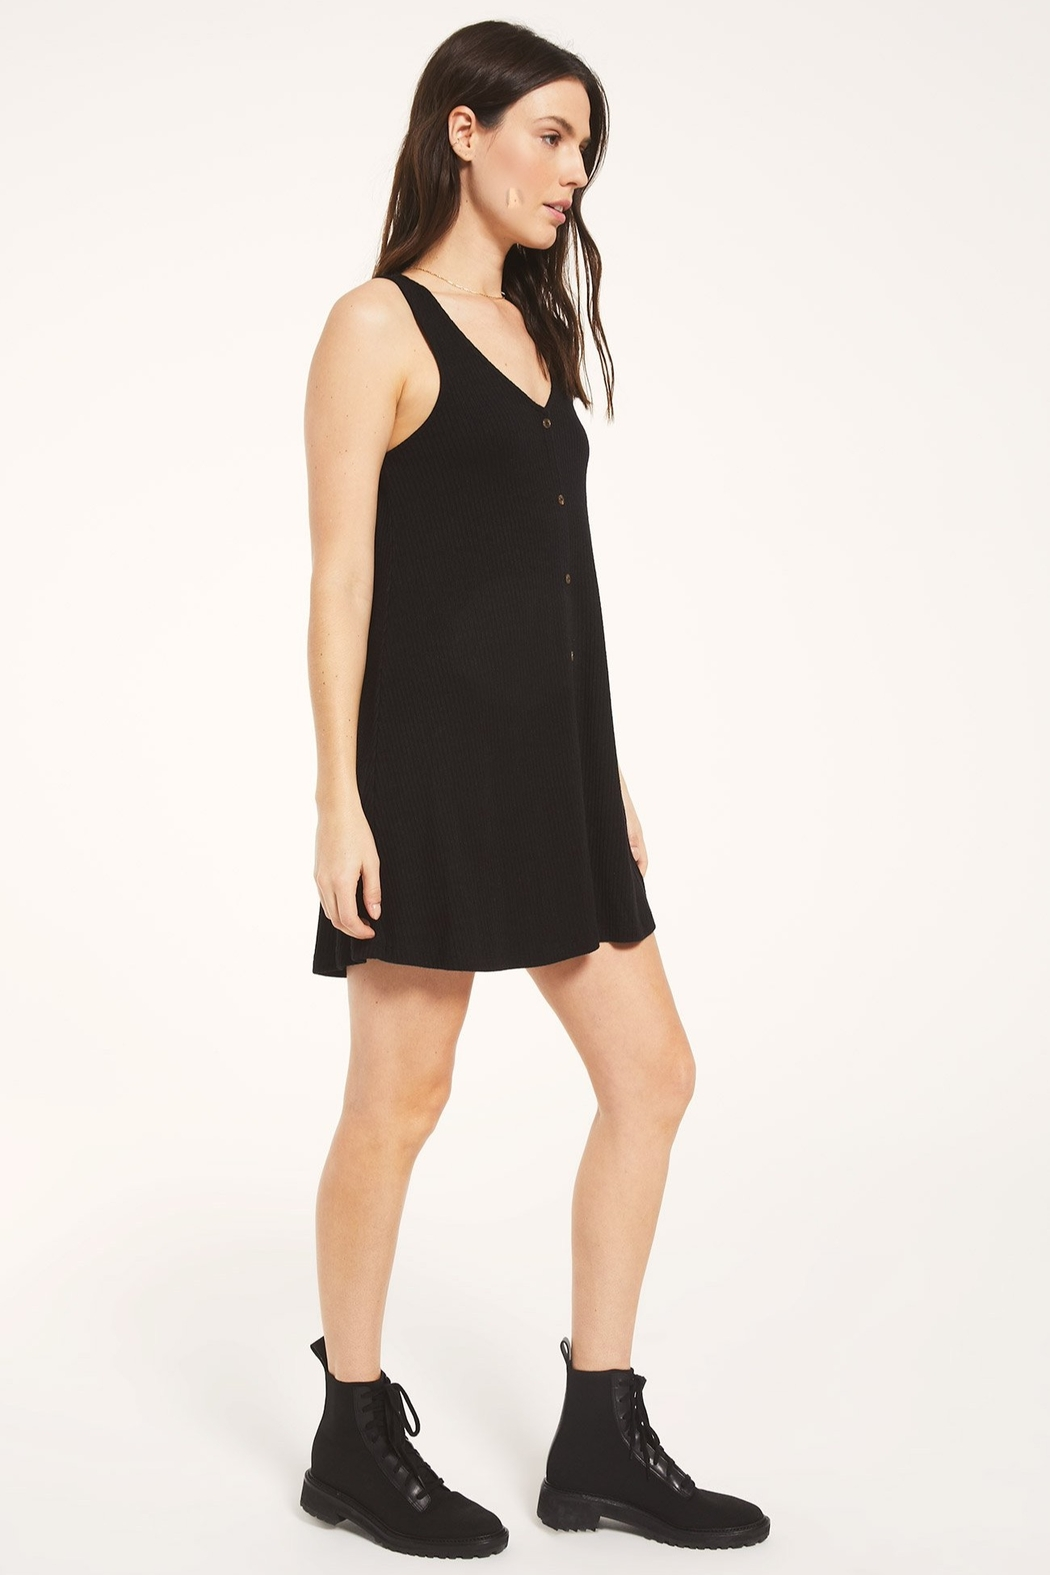 z supply Margo Rib Button Up Dress - Front Full Image